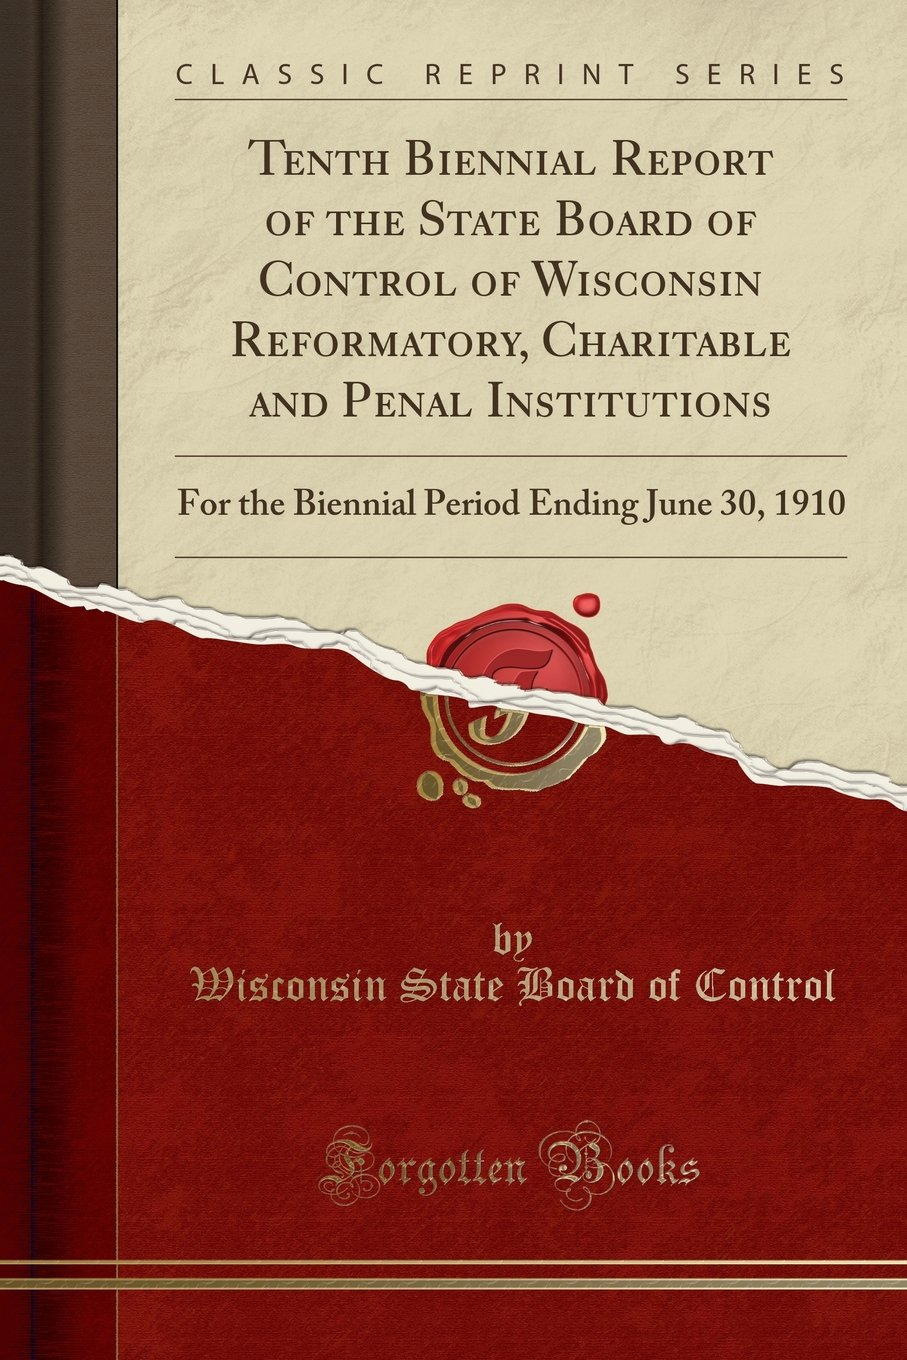 Download Tenth Biennial Report of the State Board of Control of Wisconsin Reformatory, Charitable and Penal Institutions: For the Biennial Period Ending June 30, 1910 (Classic Reprint) pdf